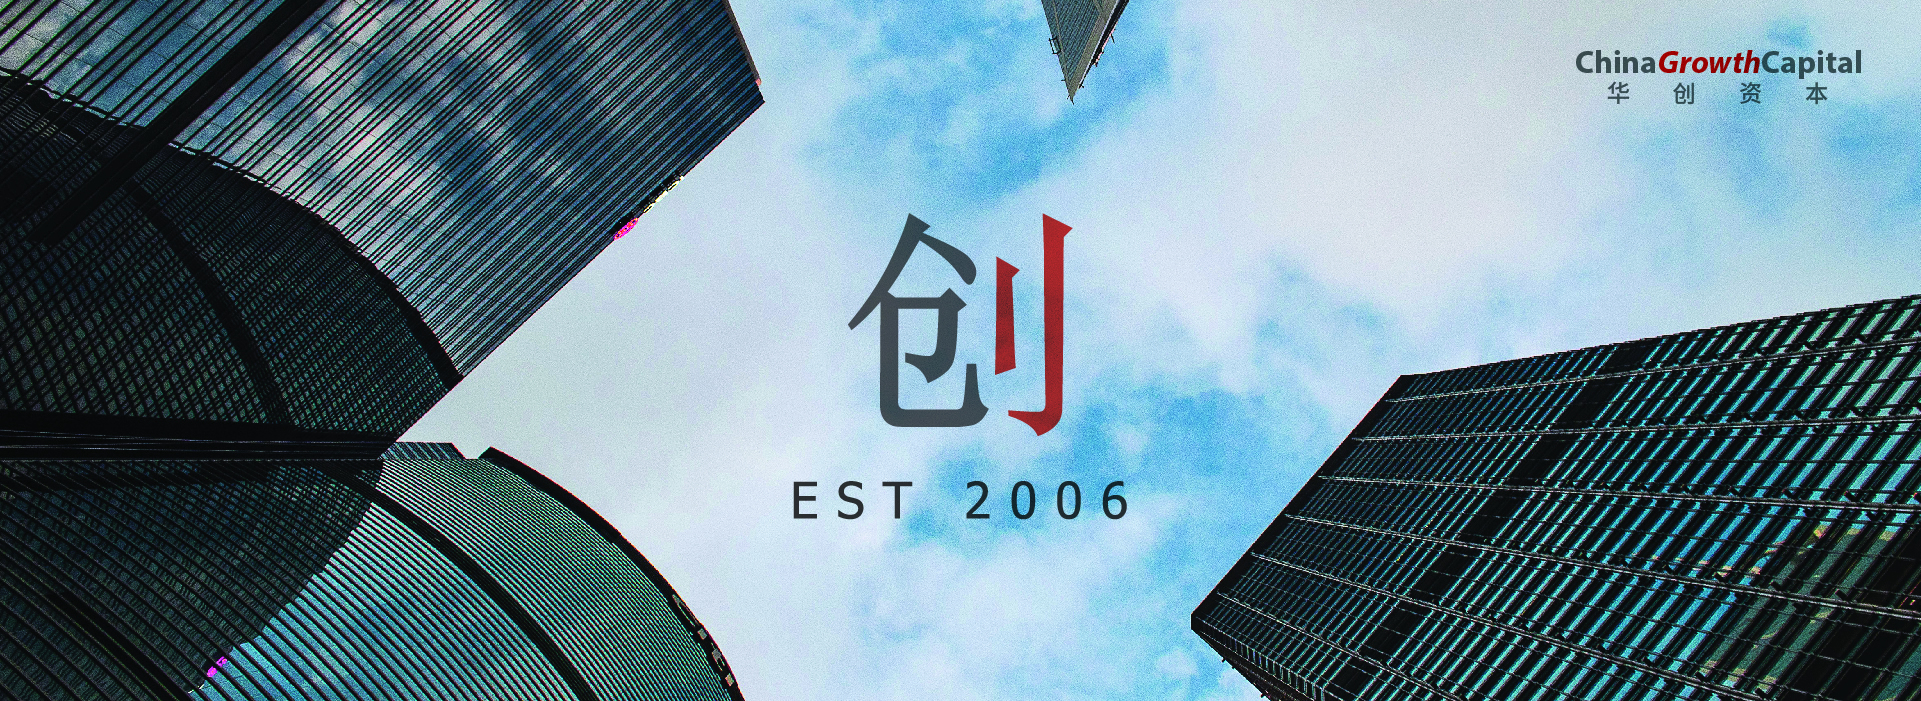 华创资本China Growth Capital Beijing Venture Capital Firm